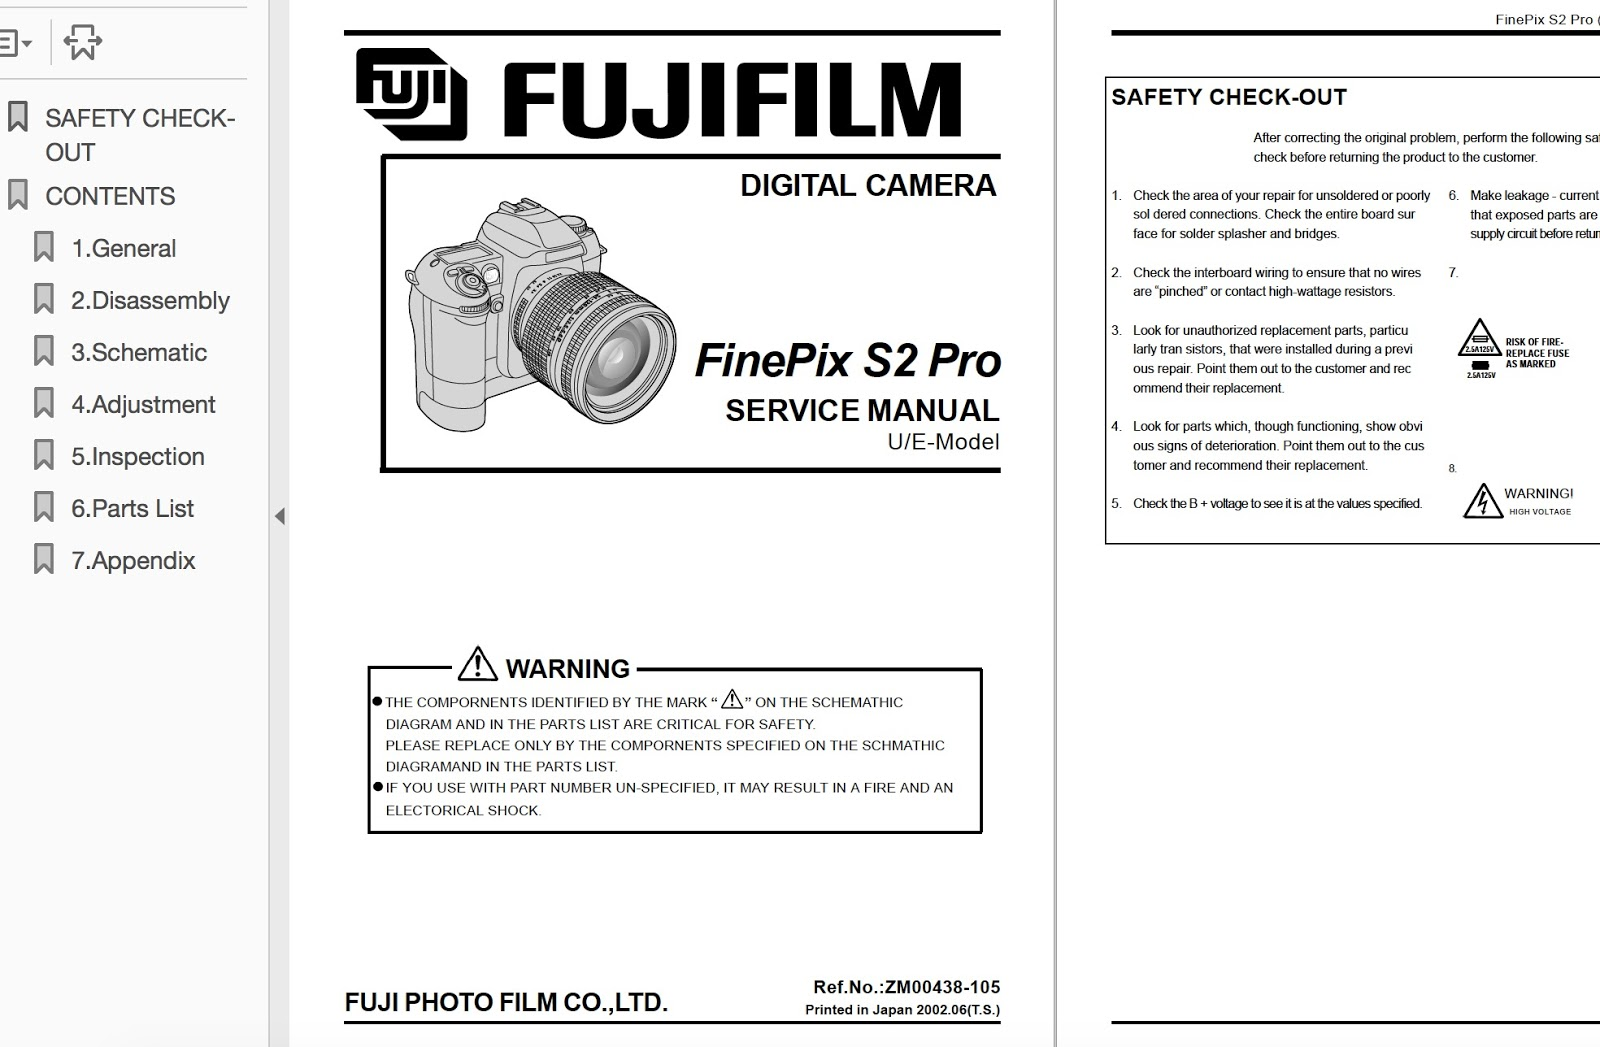 FUJIFILM FinePix S2 Pro Digital Camera Service Repair Manual